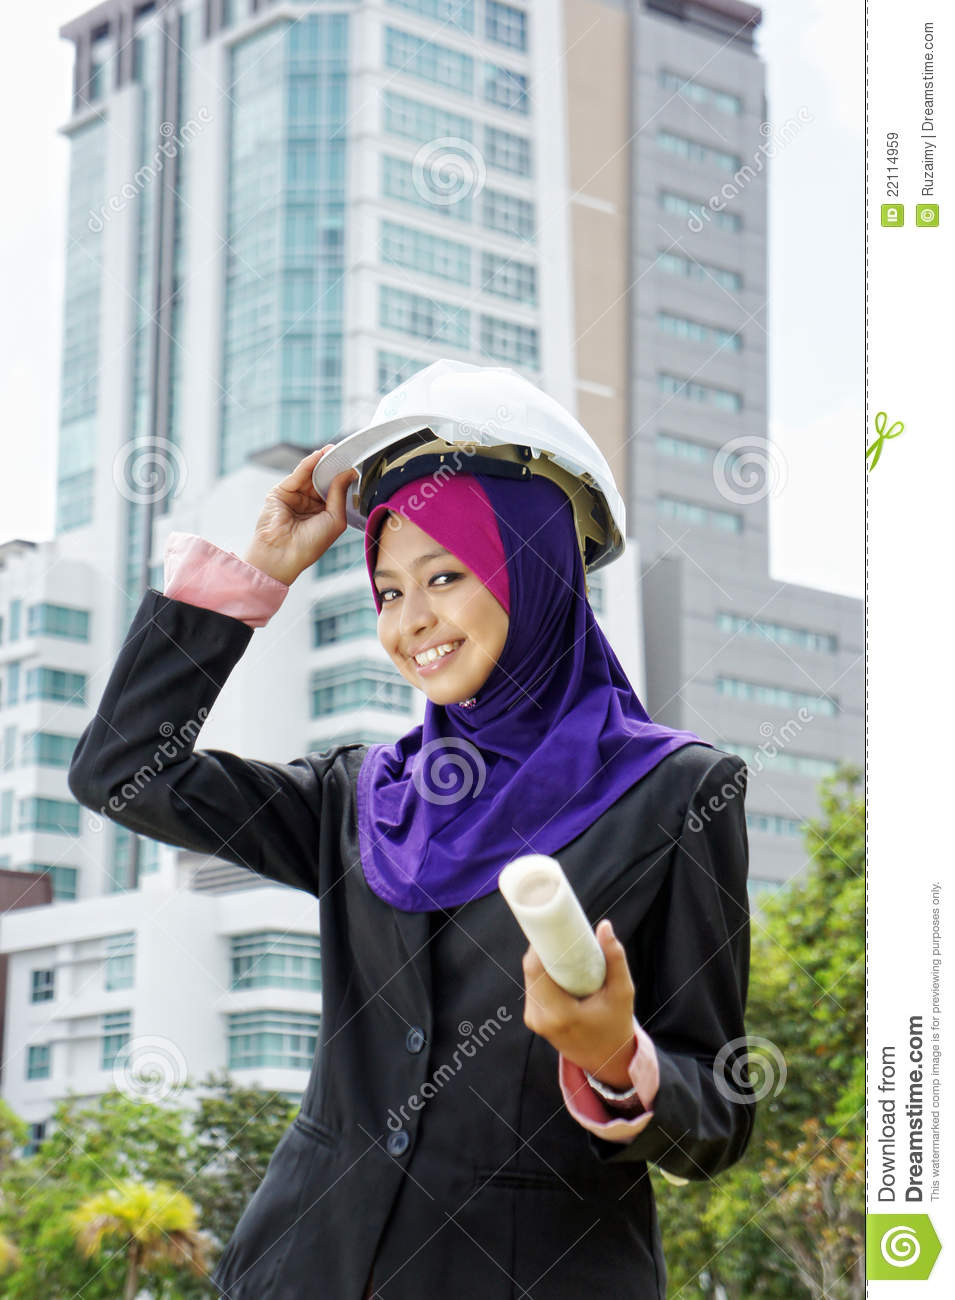 norcatur muslim single women Create your free profile if you are an arab single woman or a middle eastern single woman searching for your life muslim singles are welcome for muslim.